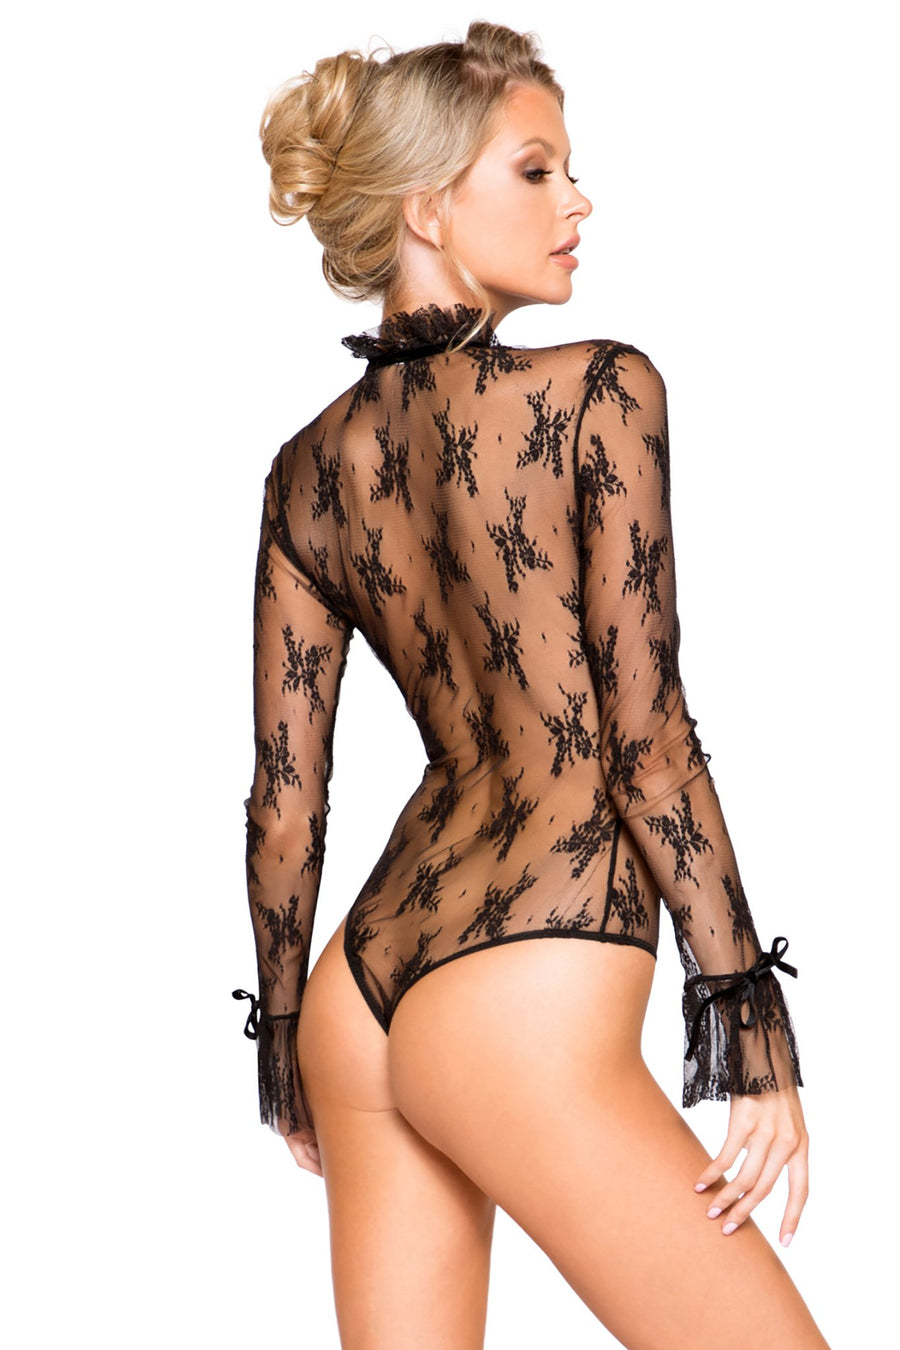 Elegant Long Sleeved Keyhole Teddy with Ruffle Detail & Snap Bottom - Intimates, Roma - YourLamode